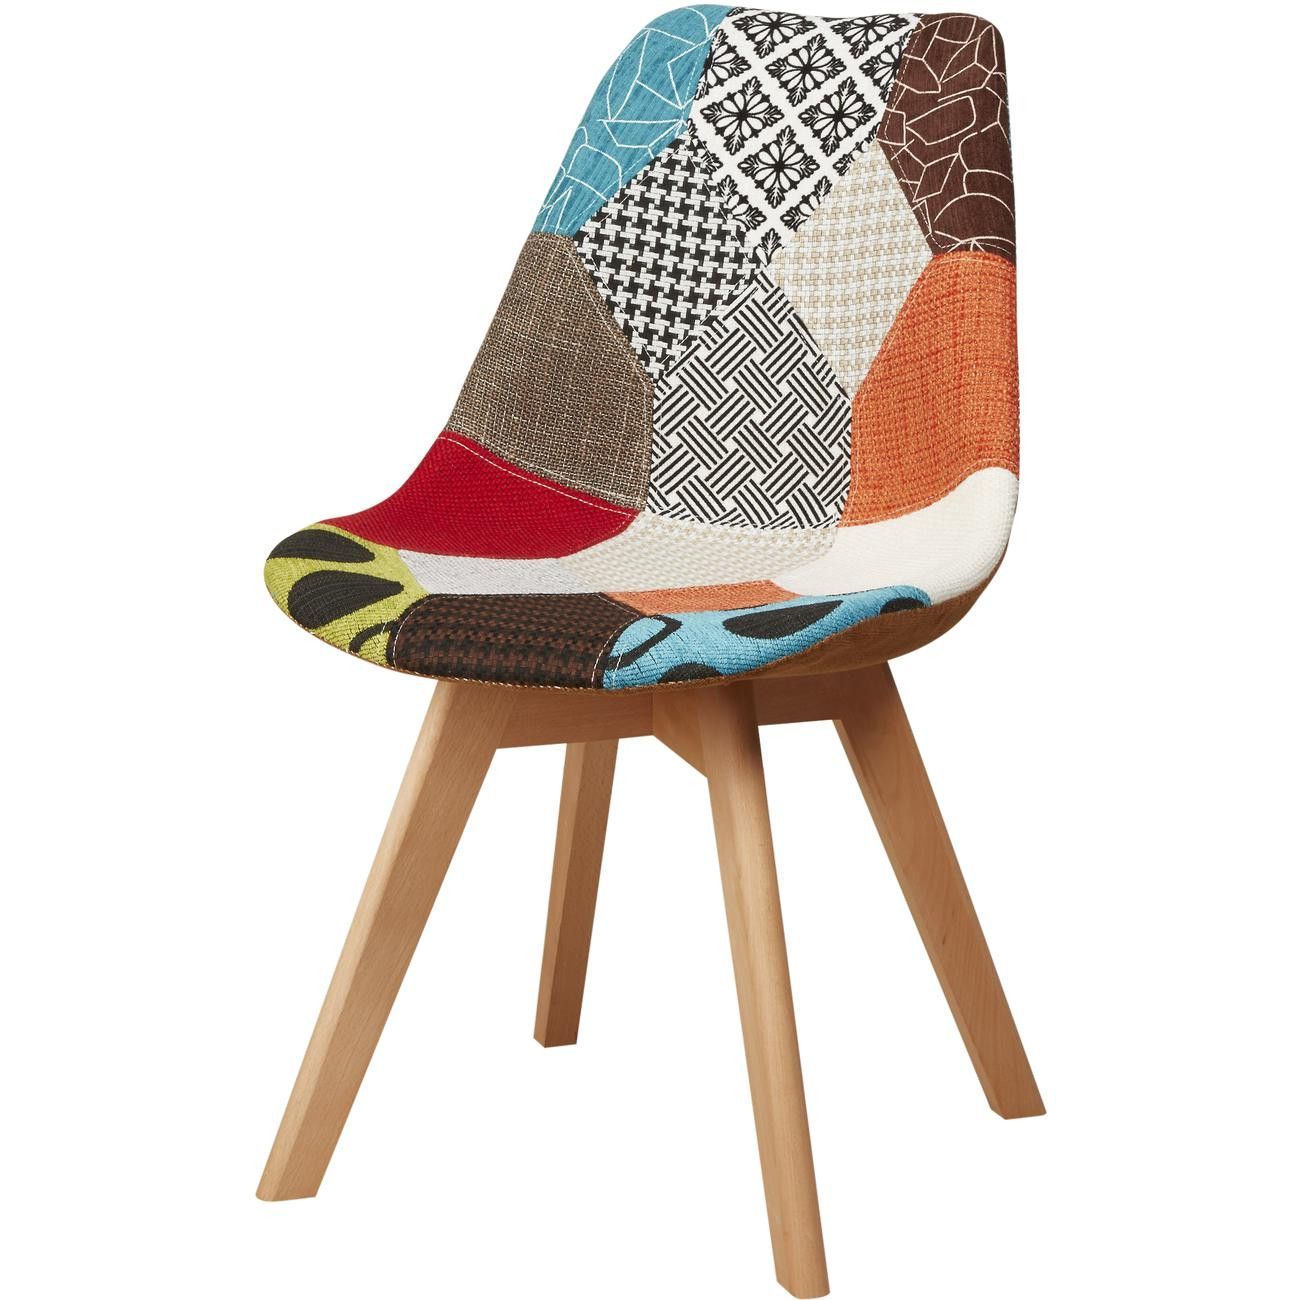 Chaise Mexican Patchwork Style Scandinave Bobochic En 2020 Chaise En Patchwork Chaise Tissu Chaises Retro